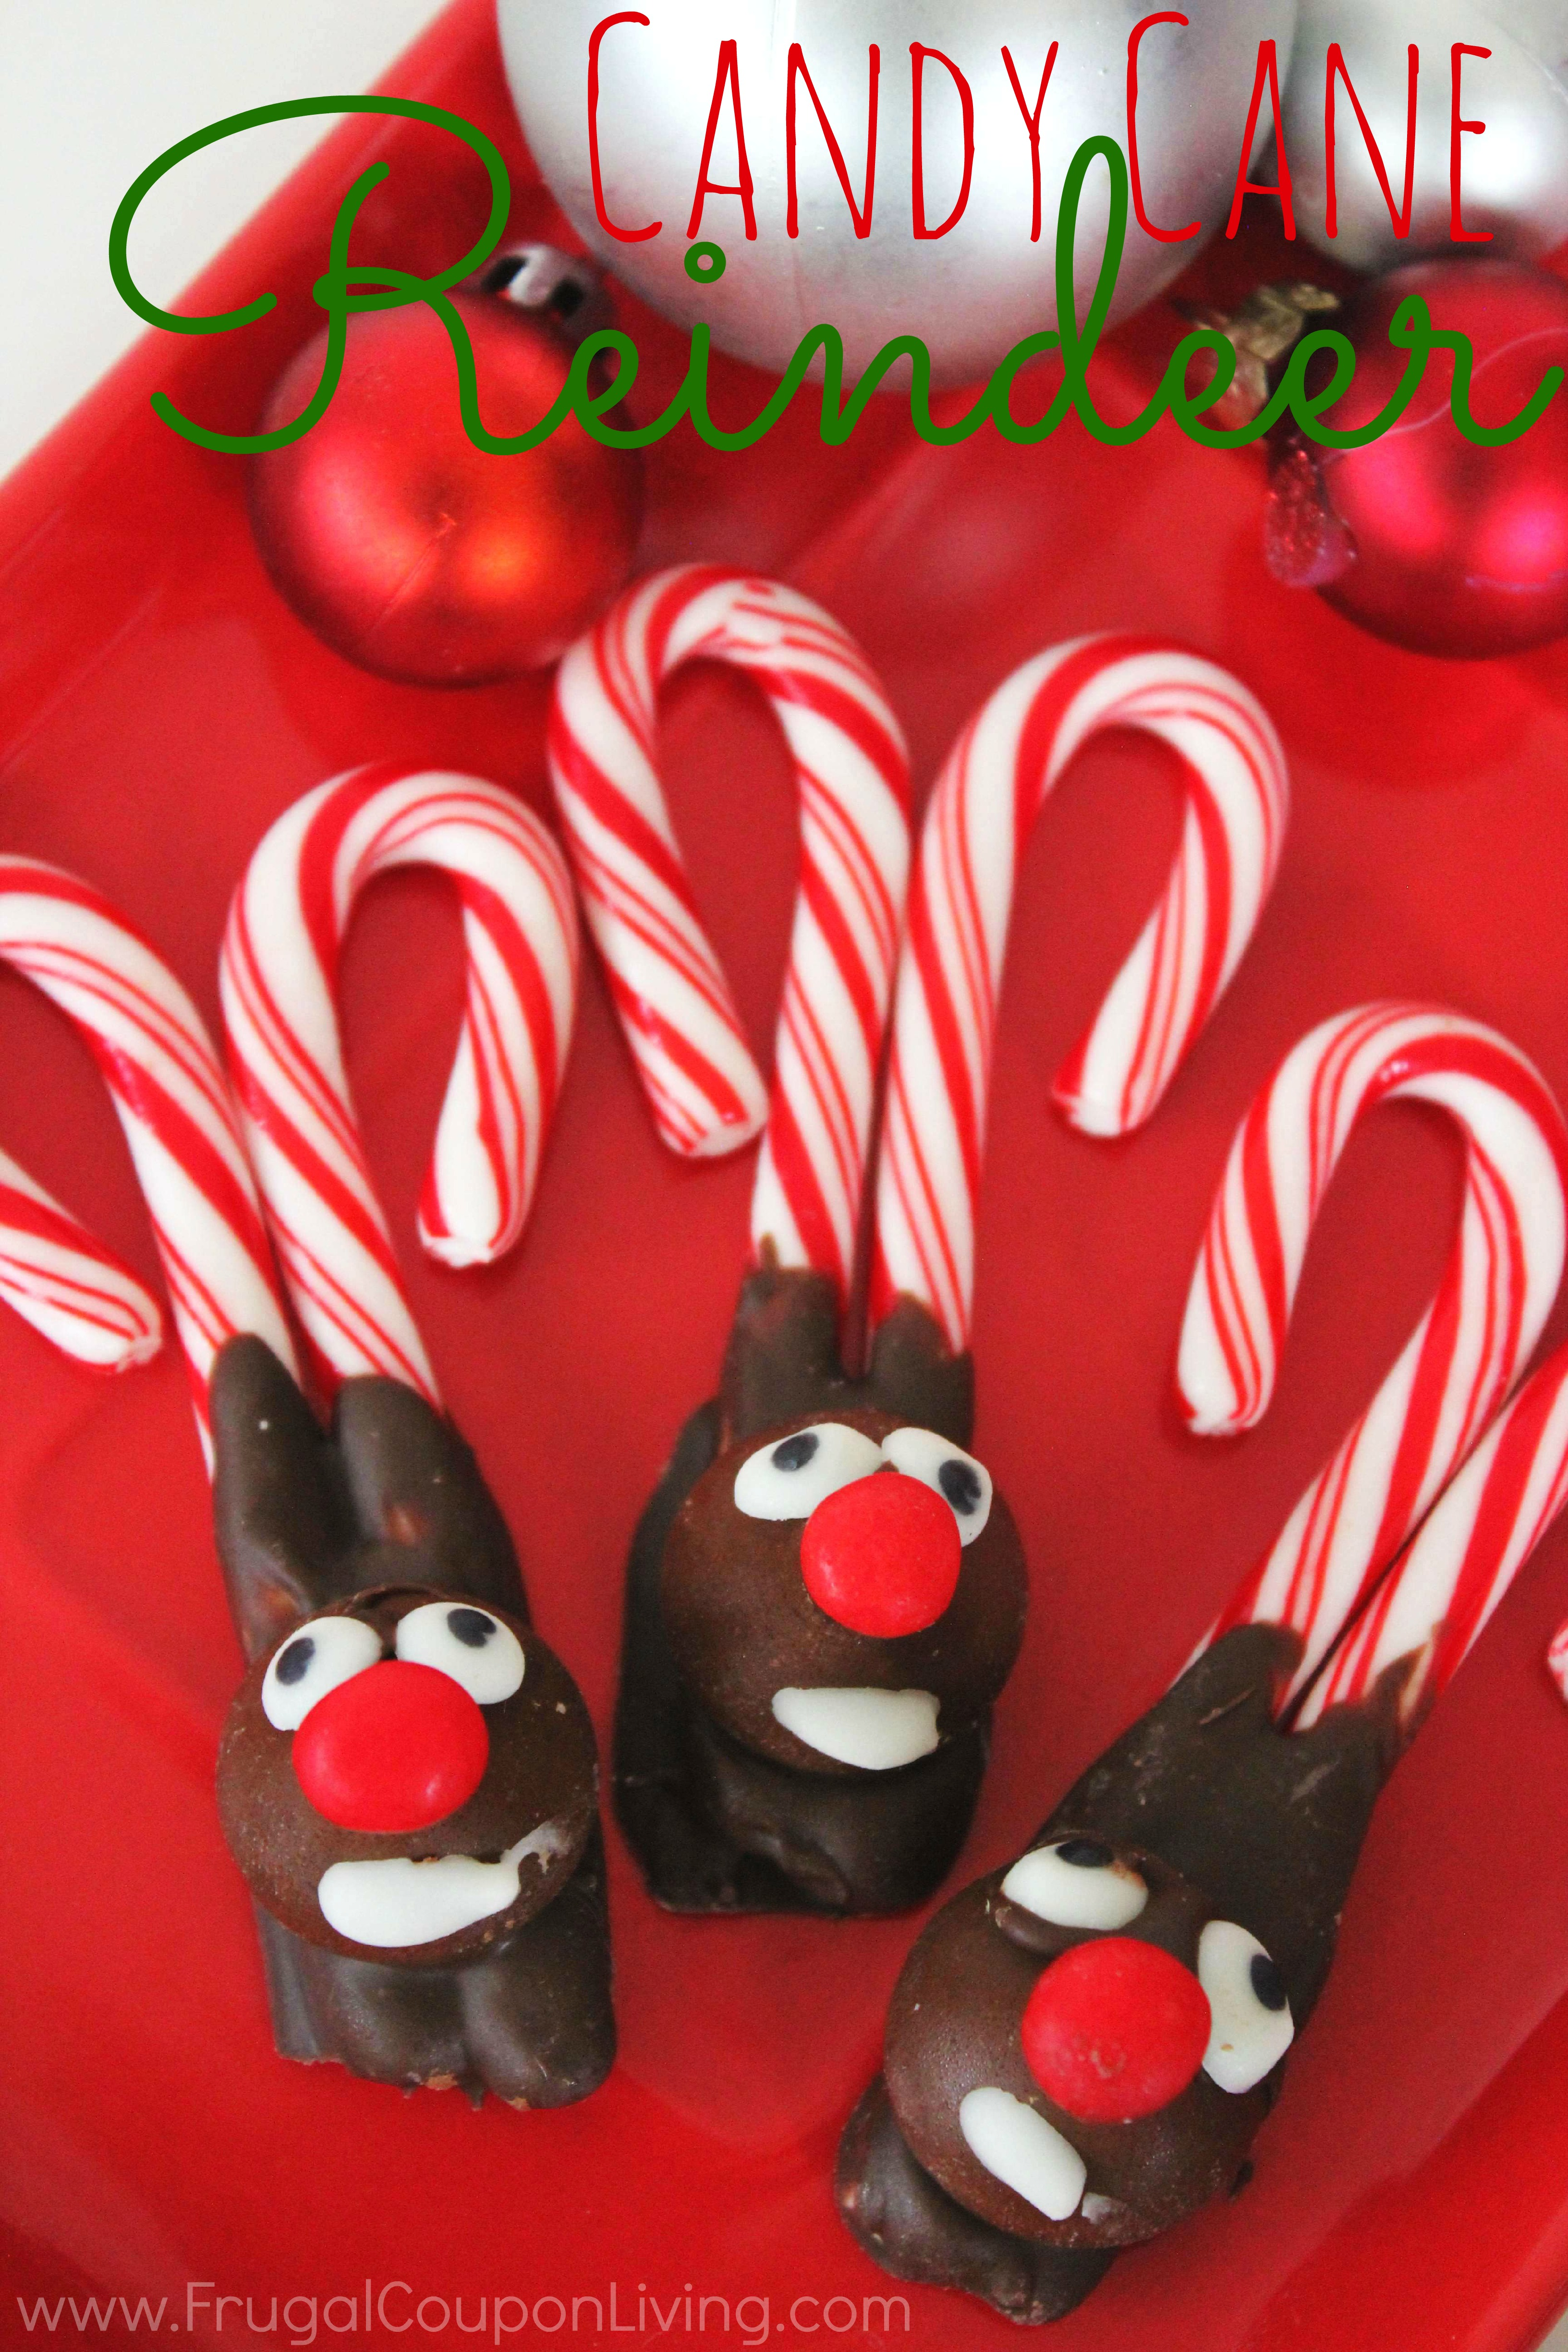 Candy Cane Reindeer – Kids Christmas Food Craft